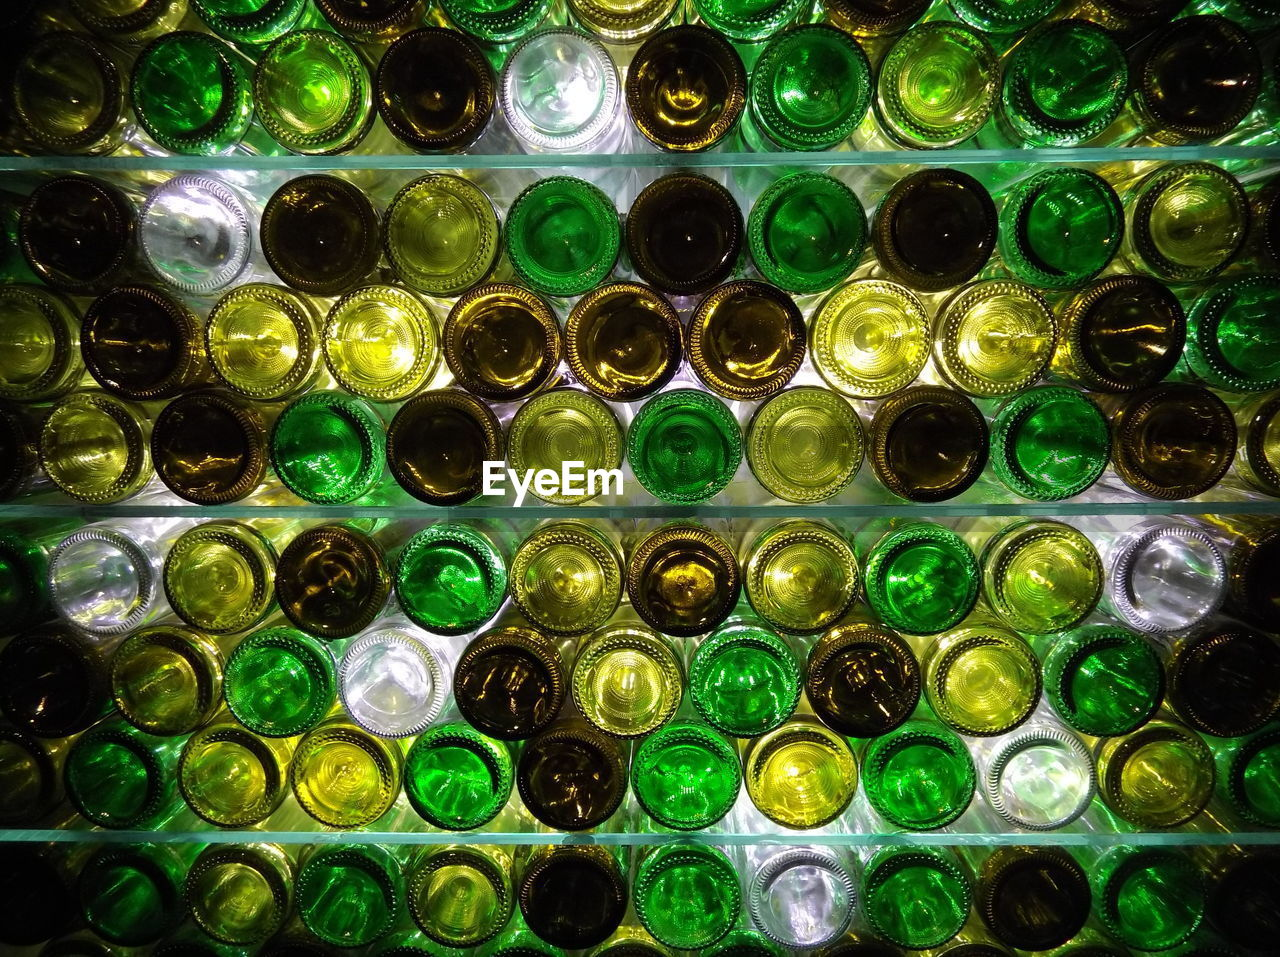 green color, full frame, backgrounds, glass - material, abundance, bottle, no people, large group of objects, container, indoors, multi colored, close-up, pattern, still life, geometric shape, shape, transparent, arrangement, circle, refreshment, glass